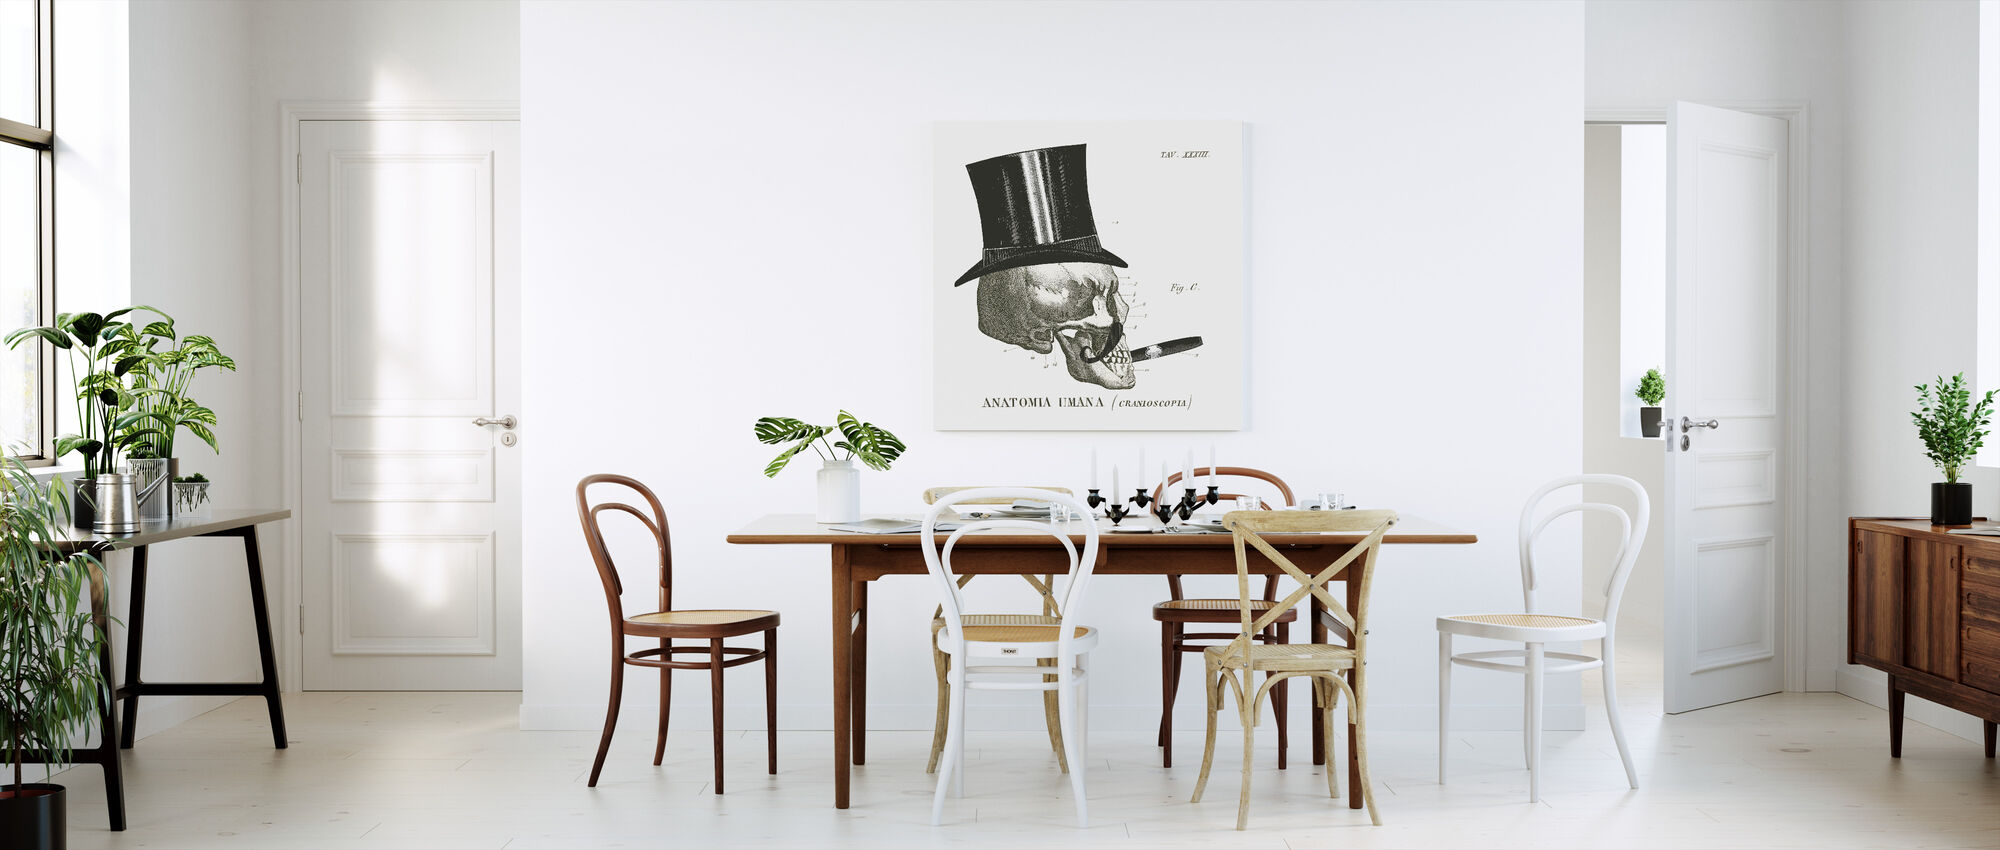 Dandy Bones III - Canvas print - Kitchen